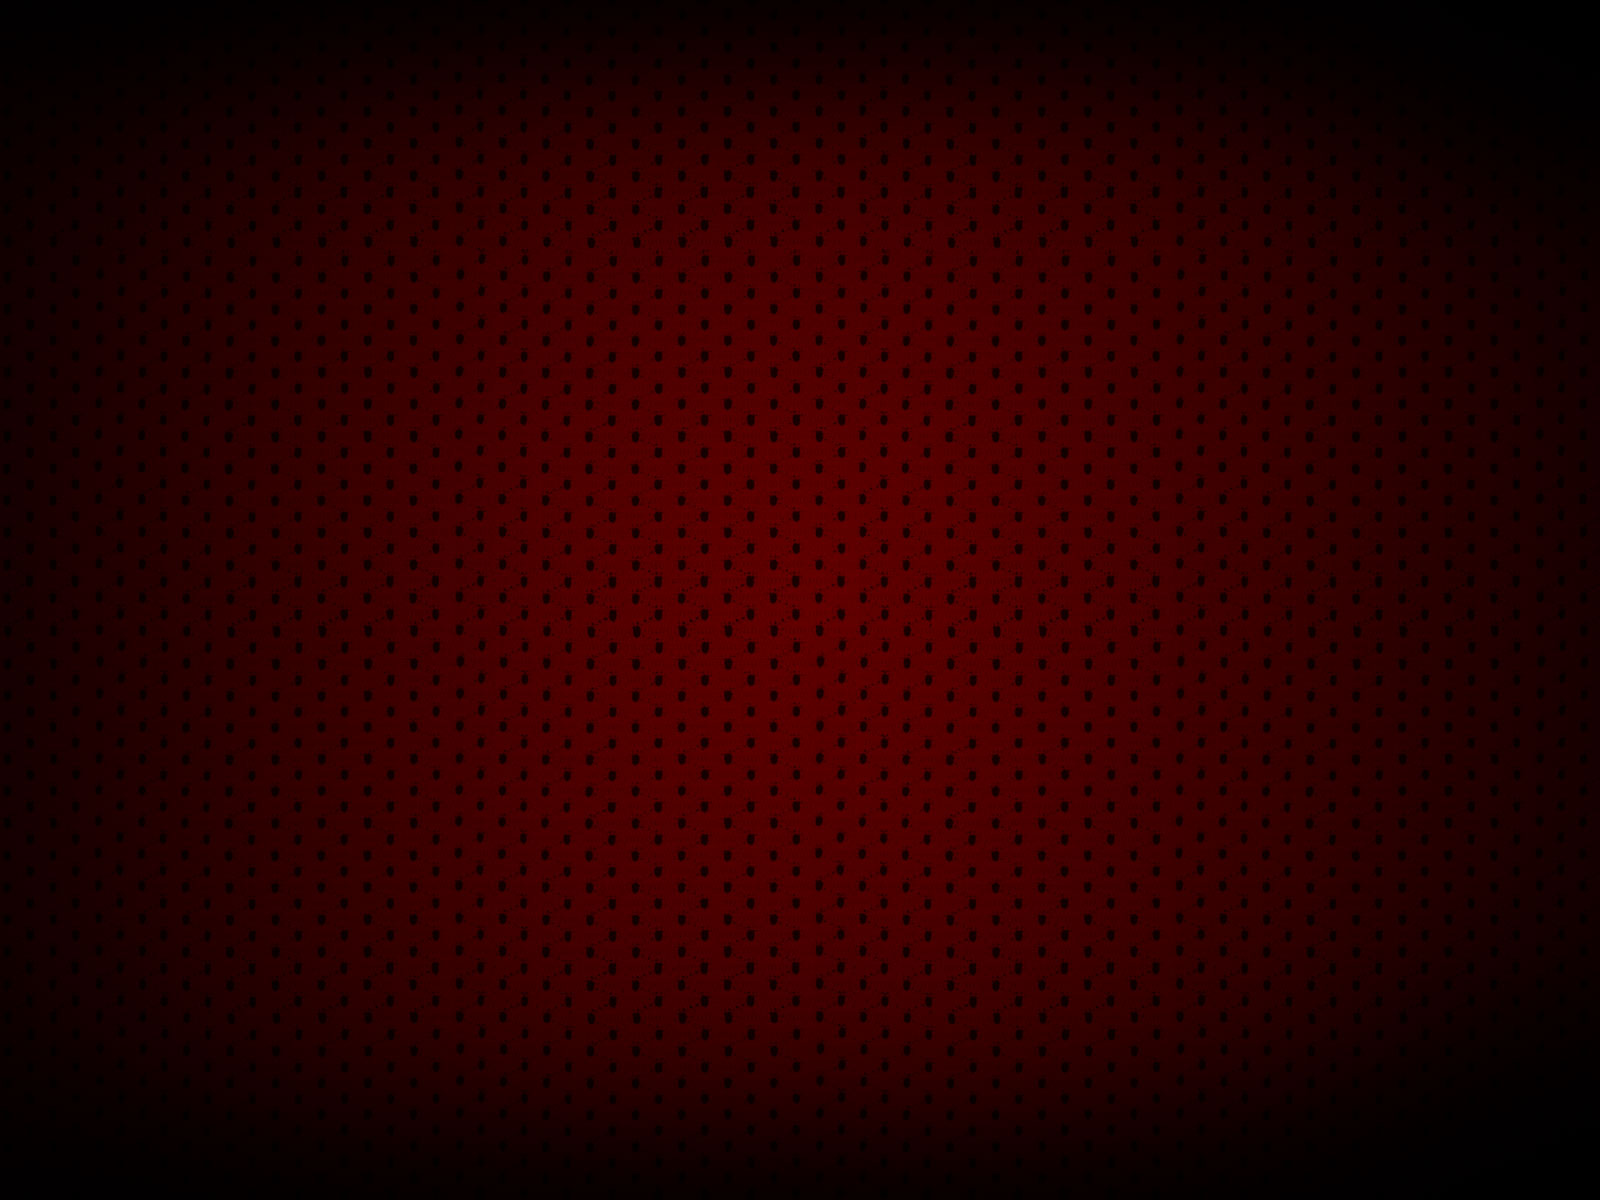 red maroon line background - photo #33